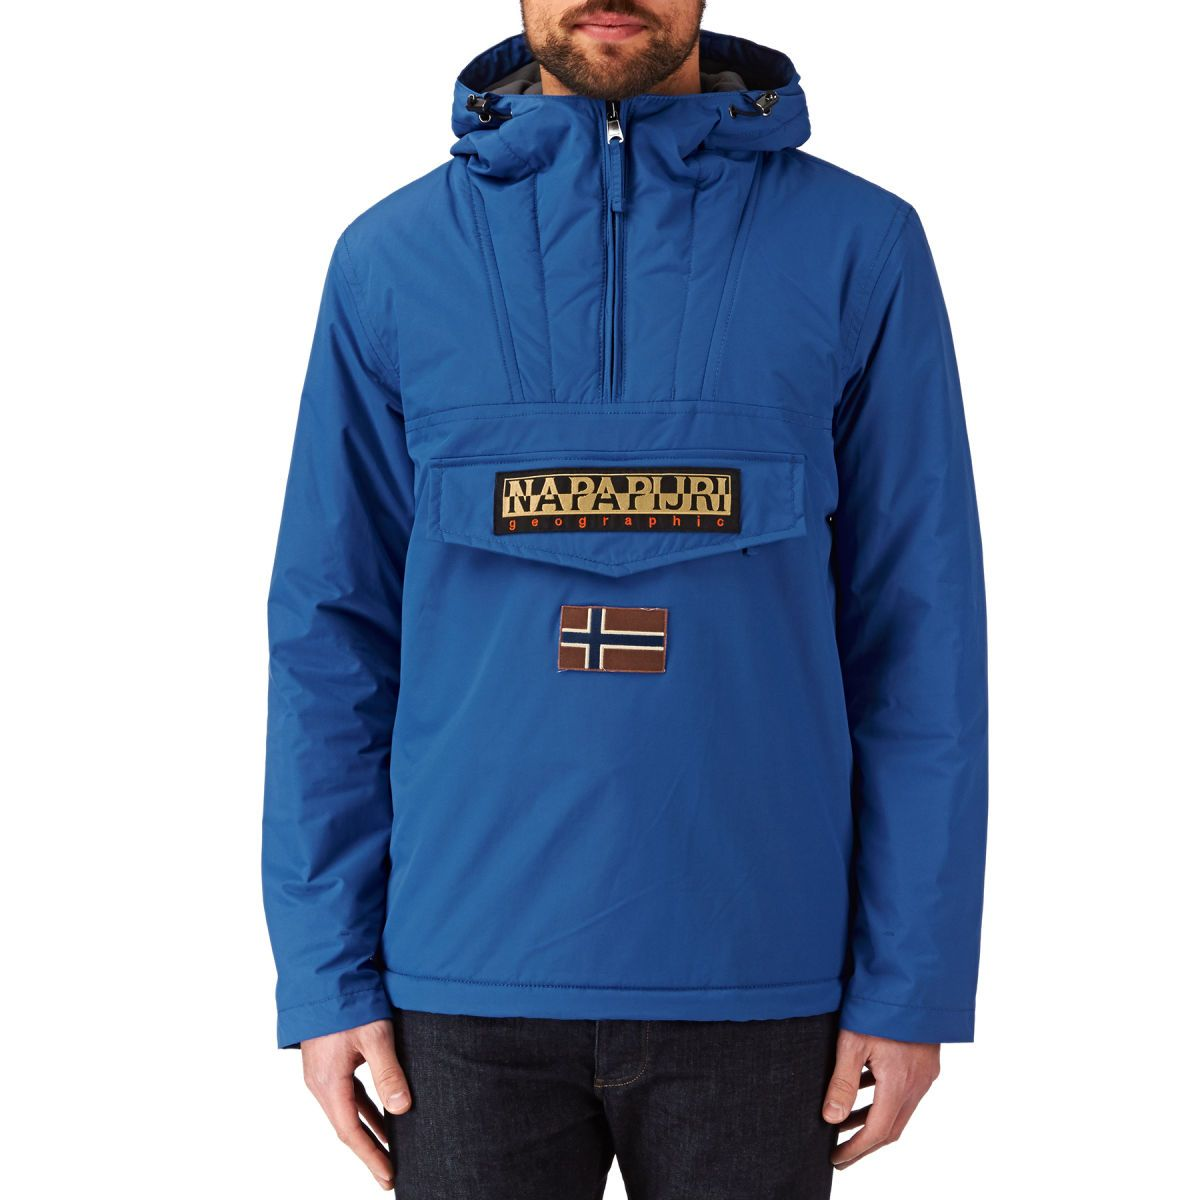 napapijri jacket sale uk